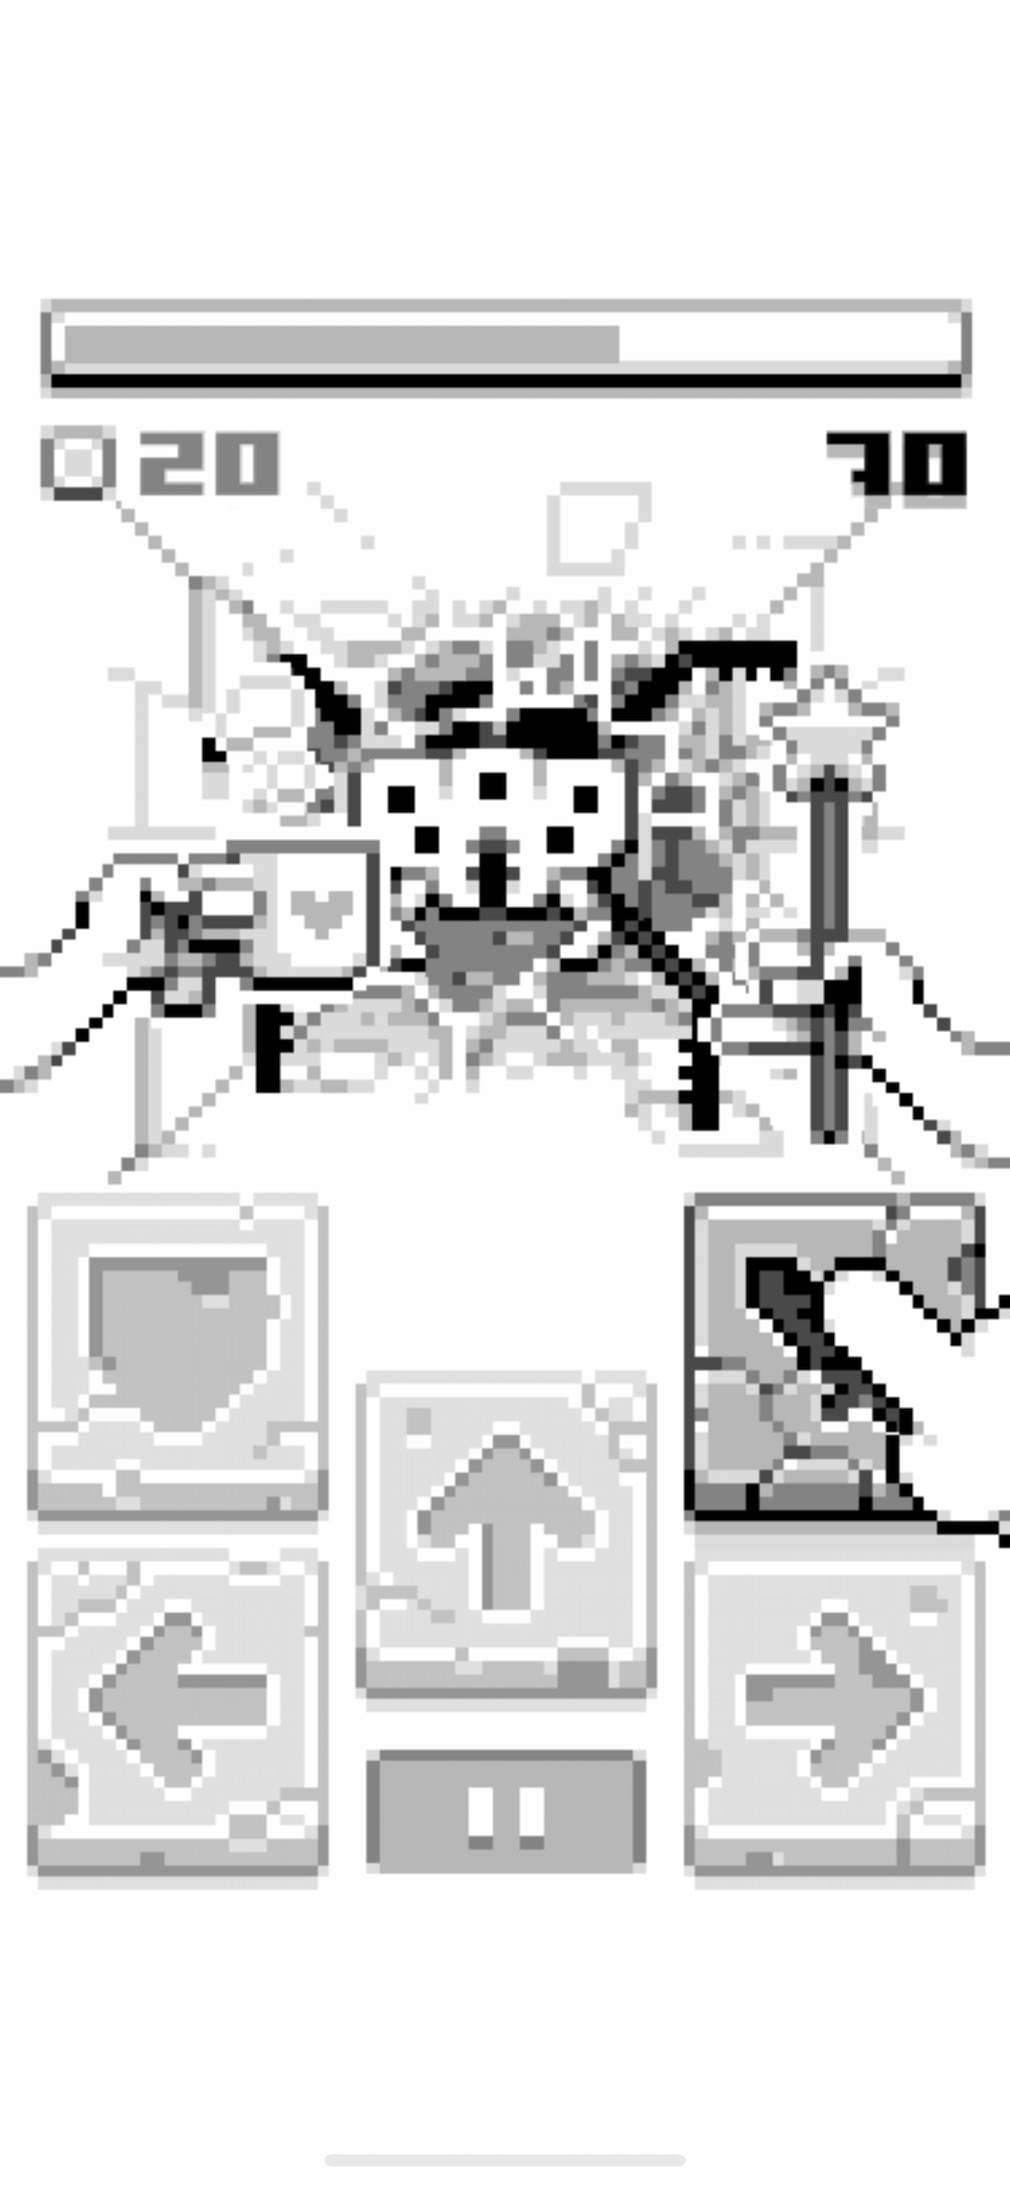 Sprint RPG iOS screenshot - Attacking a spider with a fairy wand